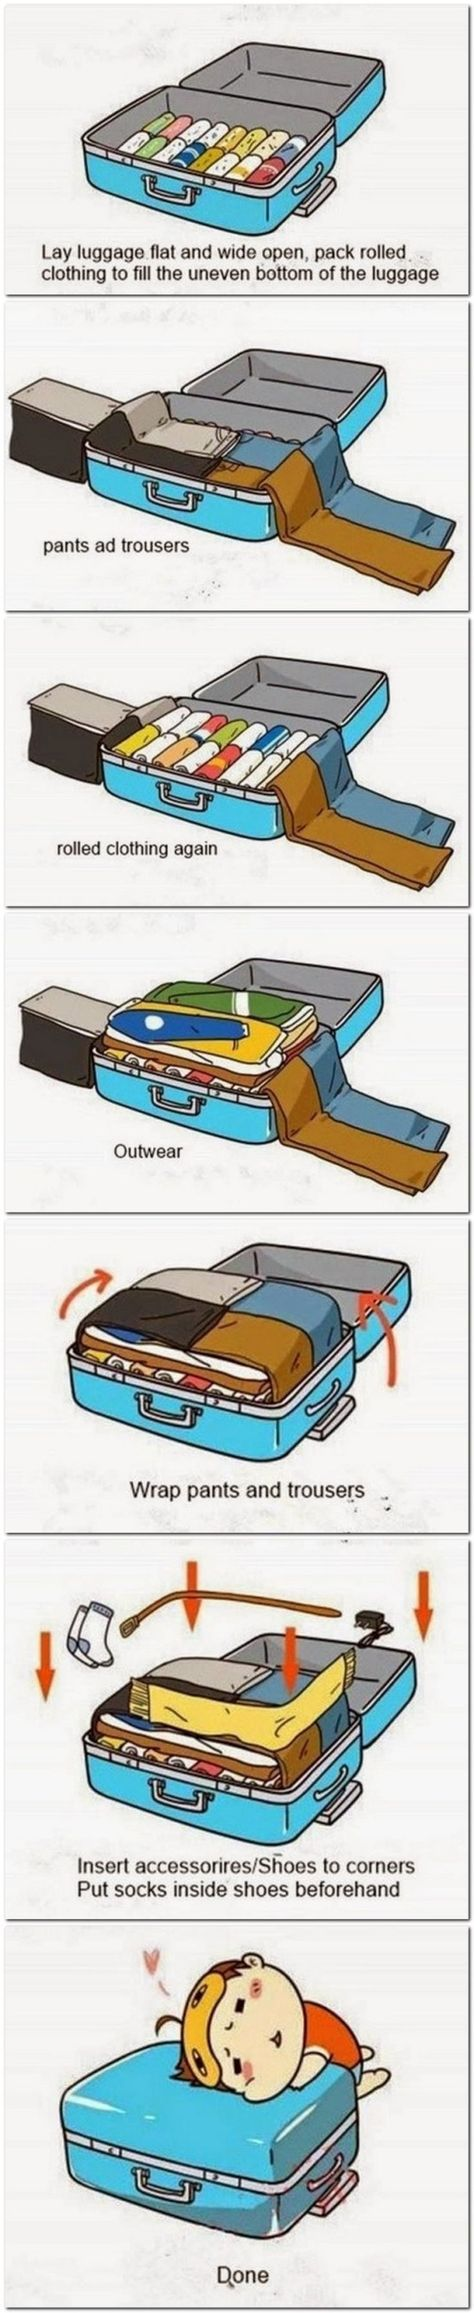 How to pack a suitcase by iris-flower